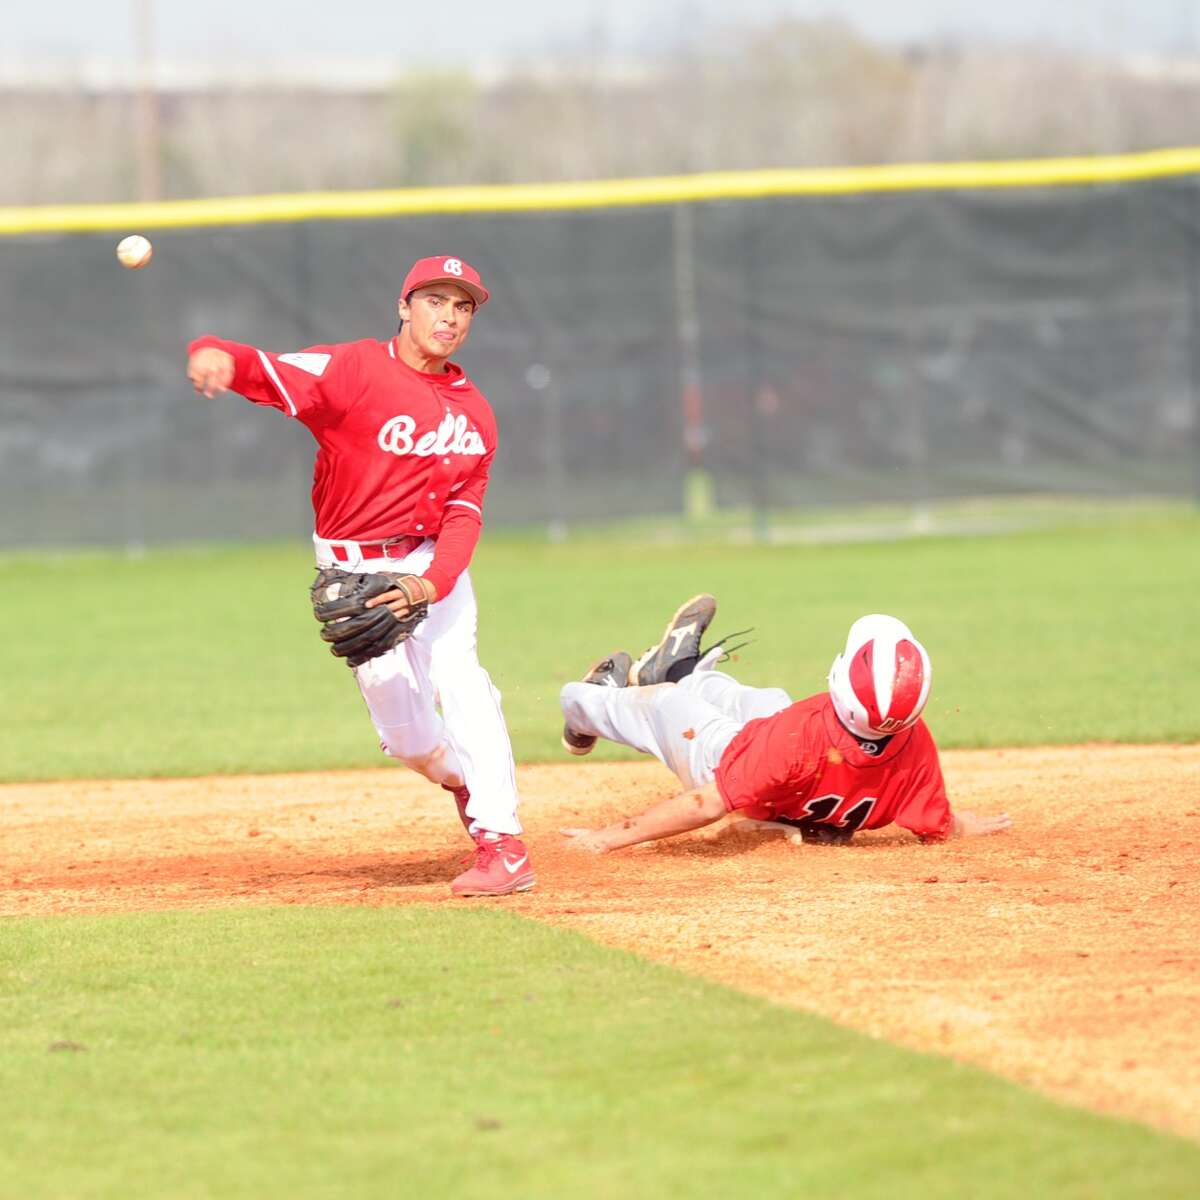 Bellaire defeated Furr to win the 45th Annual Ray Knoblauch Baseball Tournament, 8-0. Bellaire went undefeated in the tournament. Bellaire infielder Michael Page (2) gets the force out on Furr's Osvaldo Benavides (11) at second base.